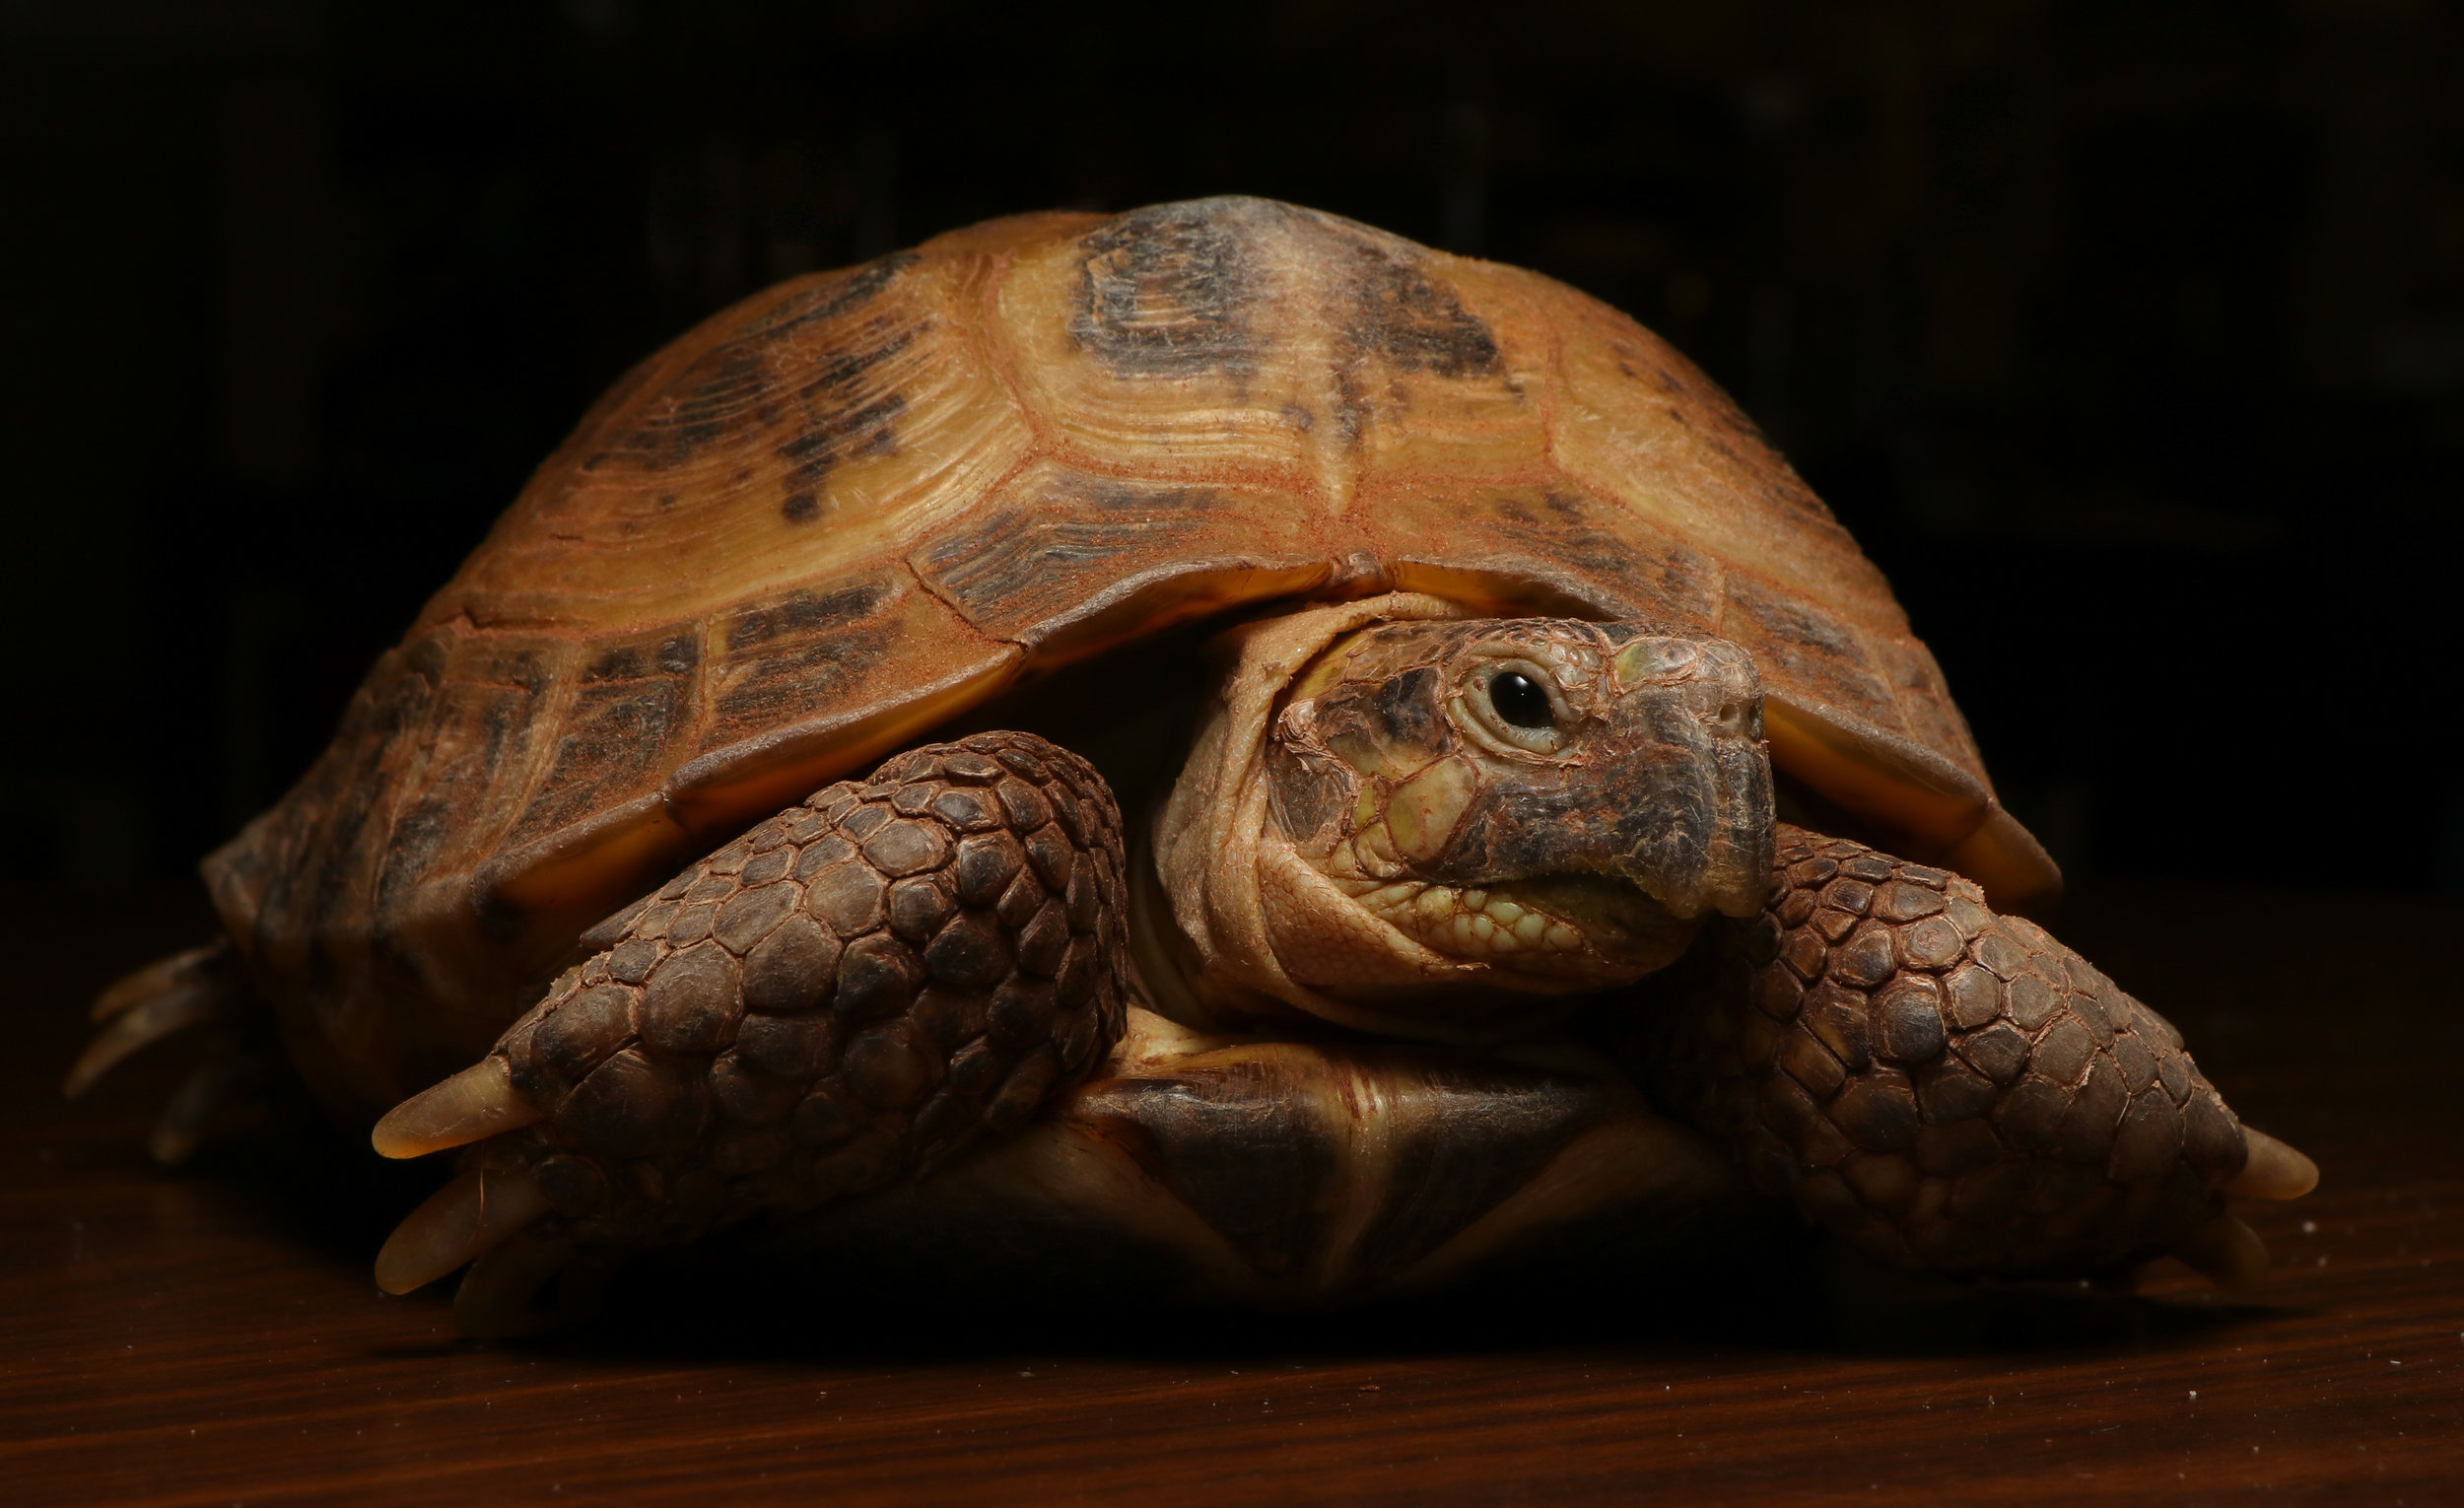 Russian or Steppe Tortoise (Testudo horsfieldi)